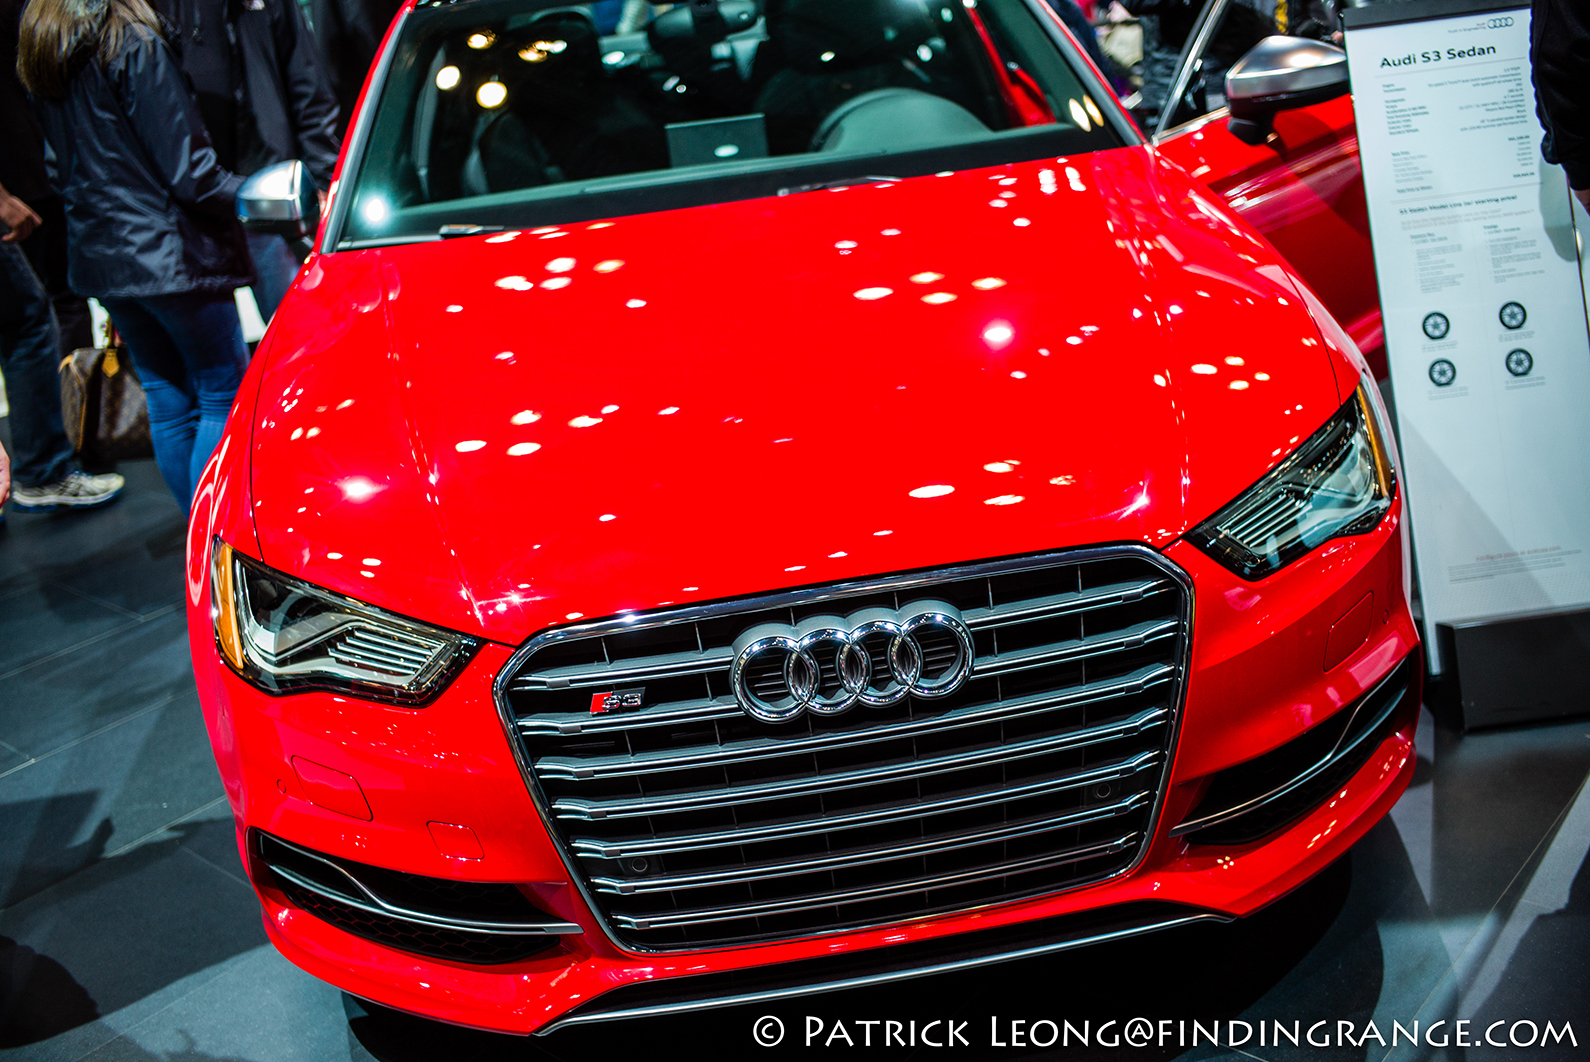 Leica-M-Typ-240-35mm-Summicron-ASPH-NY-Auto-Show-2015-Audi-S3